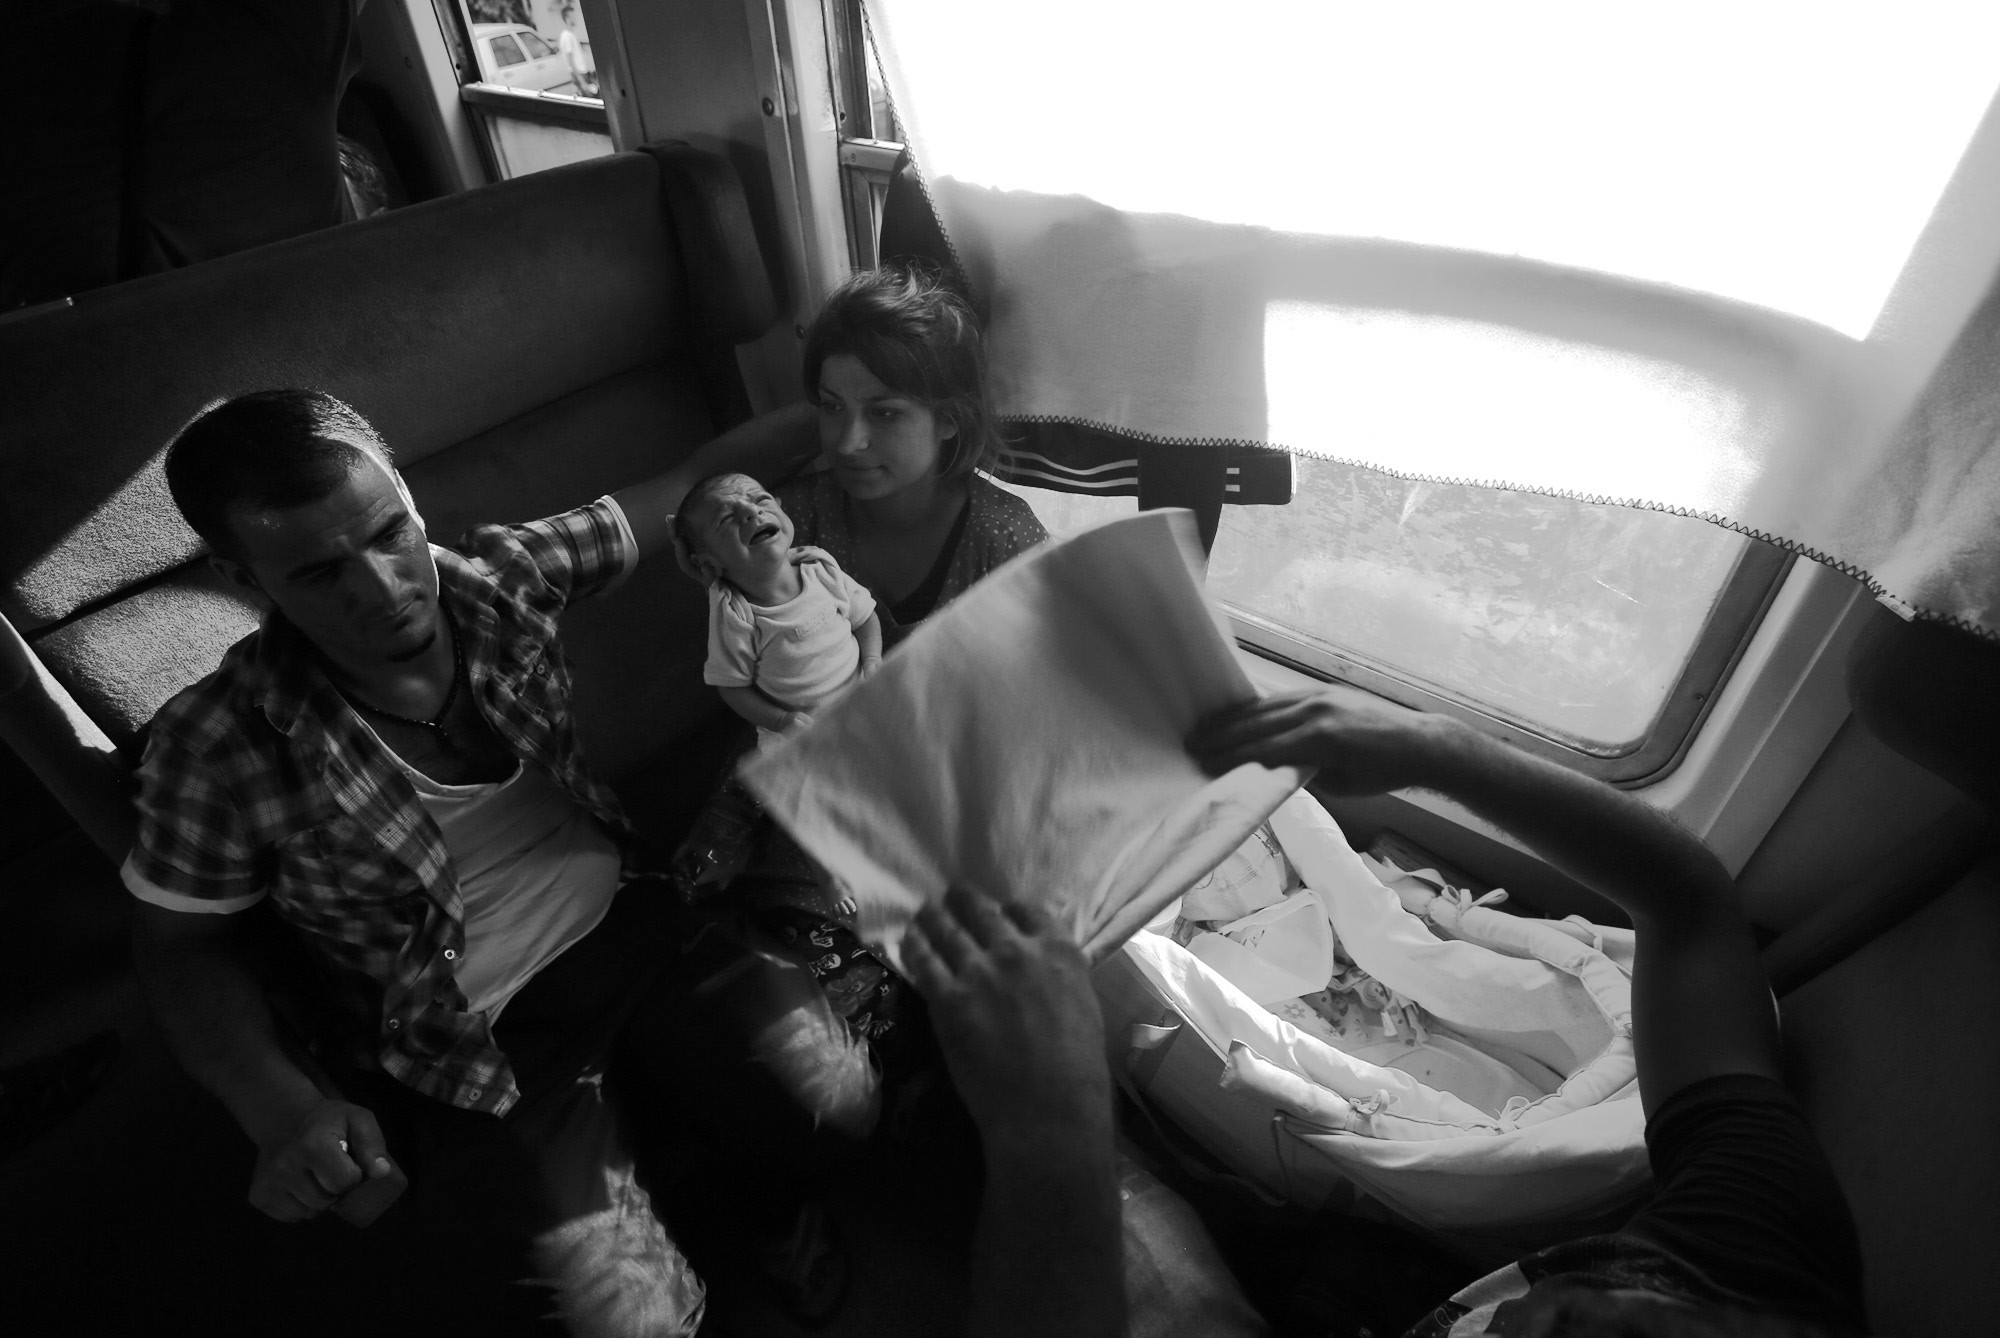 Amina Asmani, right, with her baby and husband travel on a train taking them towards Serbia, near the southern Macedonian town of Demir Kapija on Aug. 19.